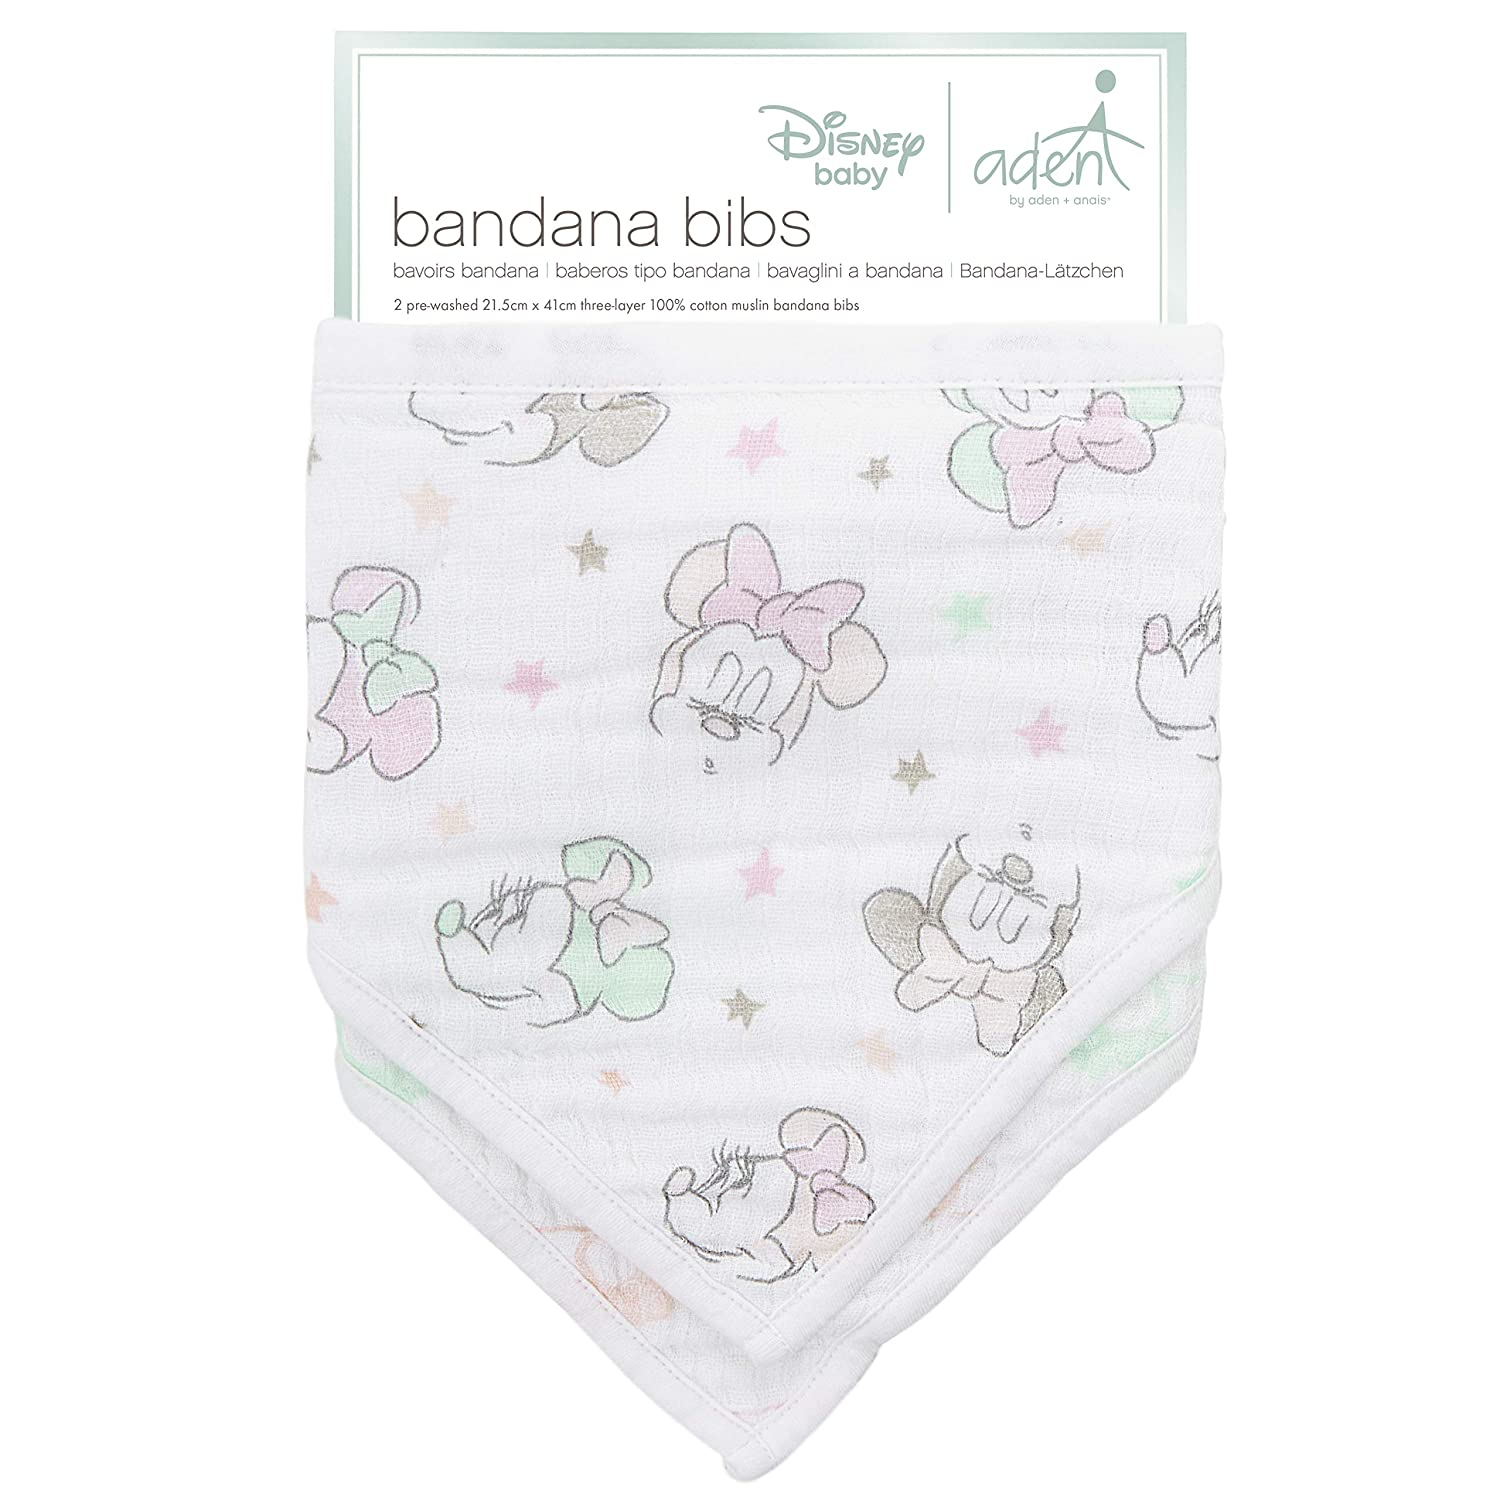 New Aden and Anais Disney 100/% Cotton Muslin Bandana Bibs 2 Bibs per Pack